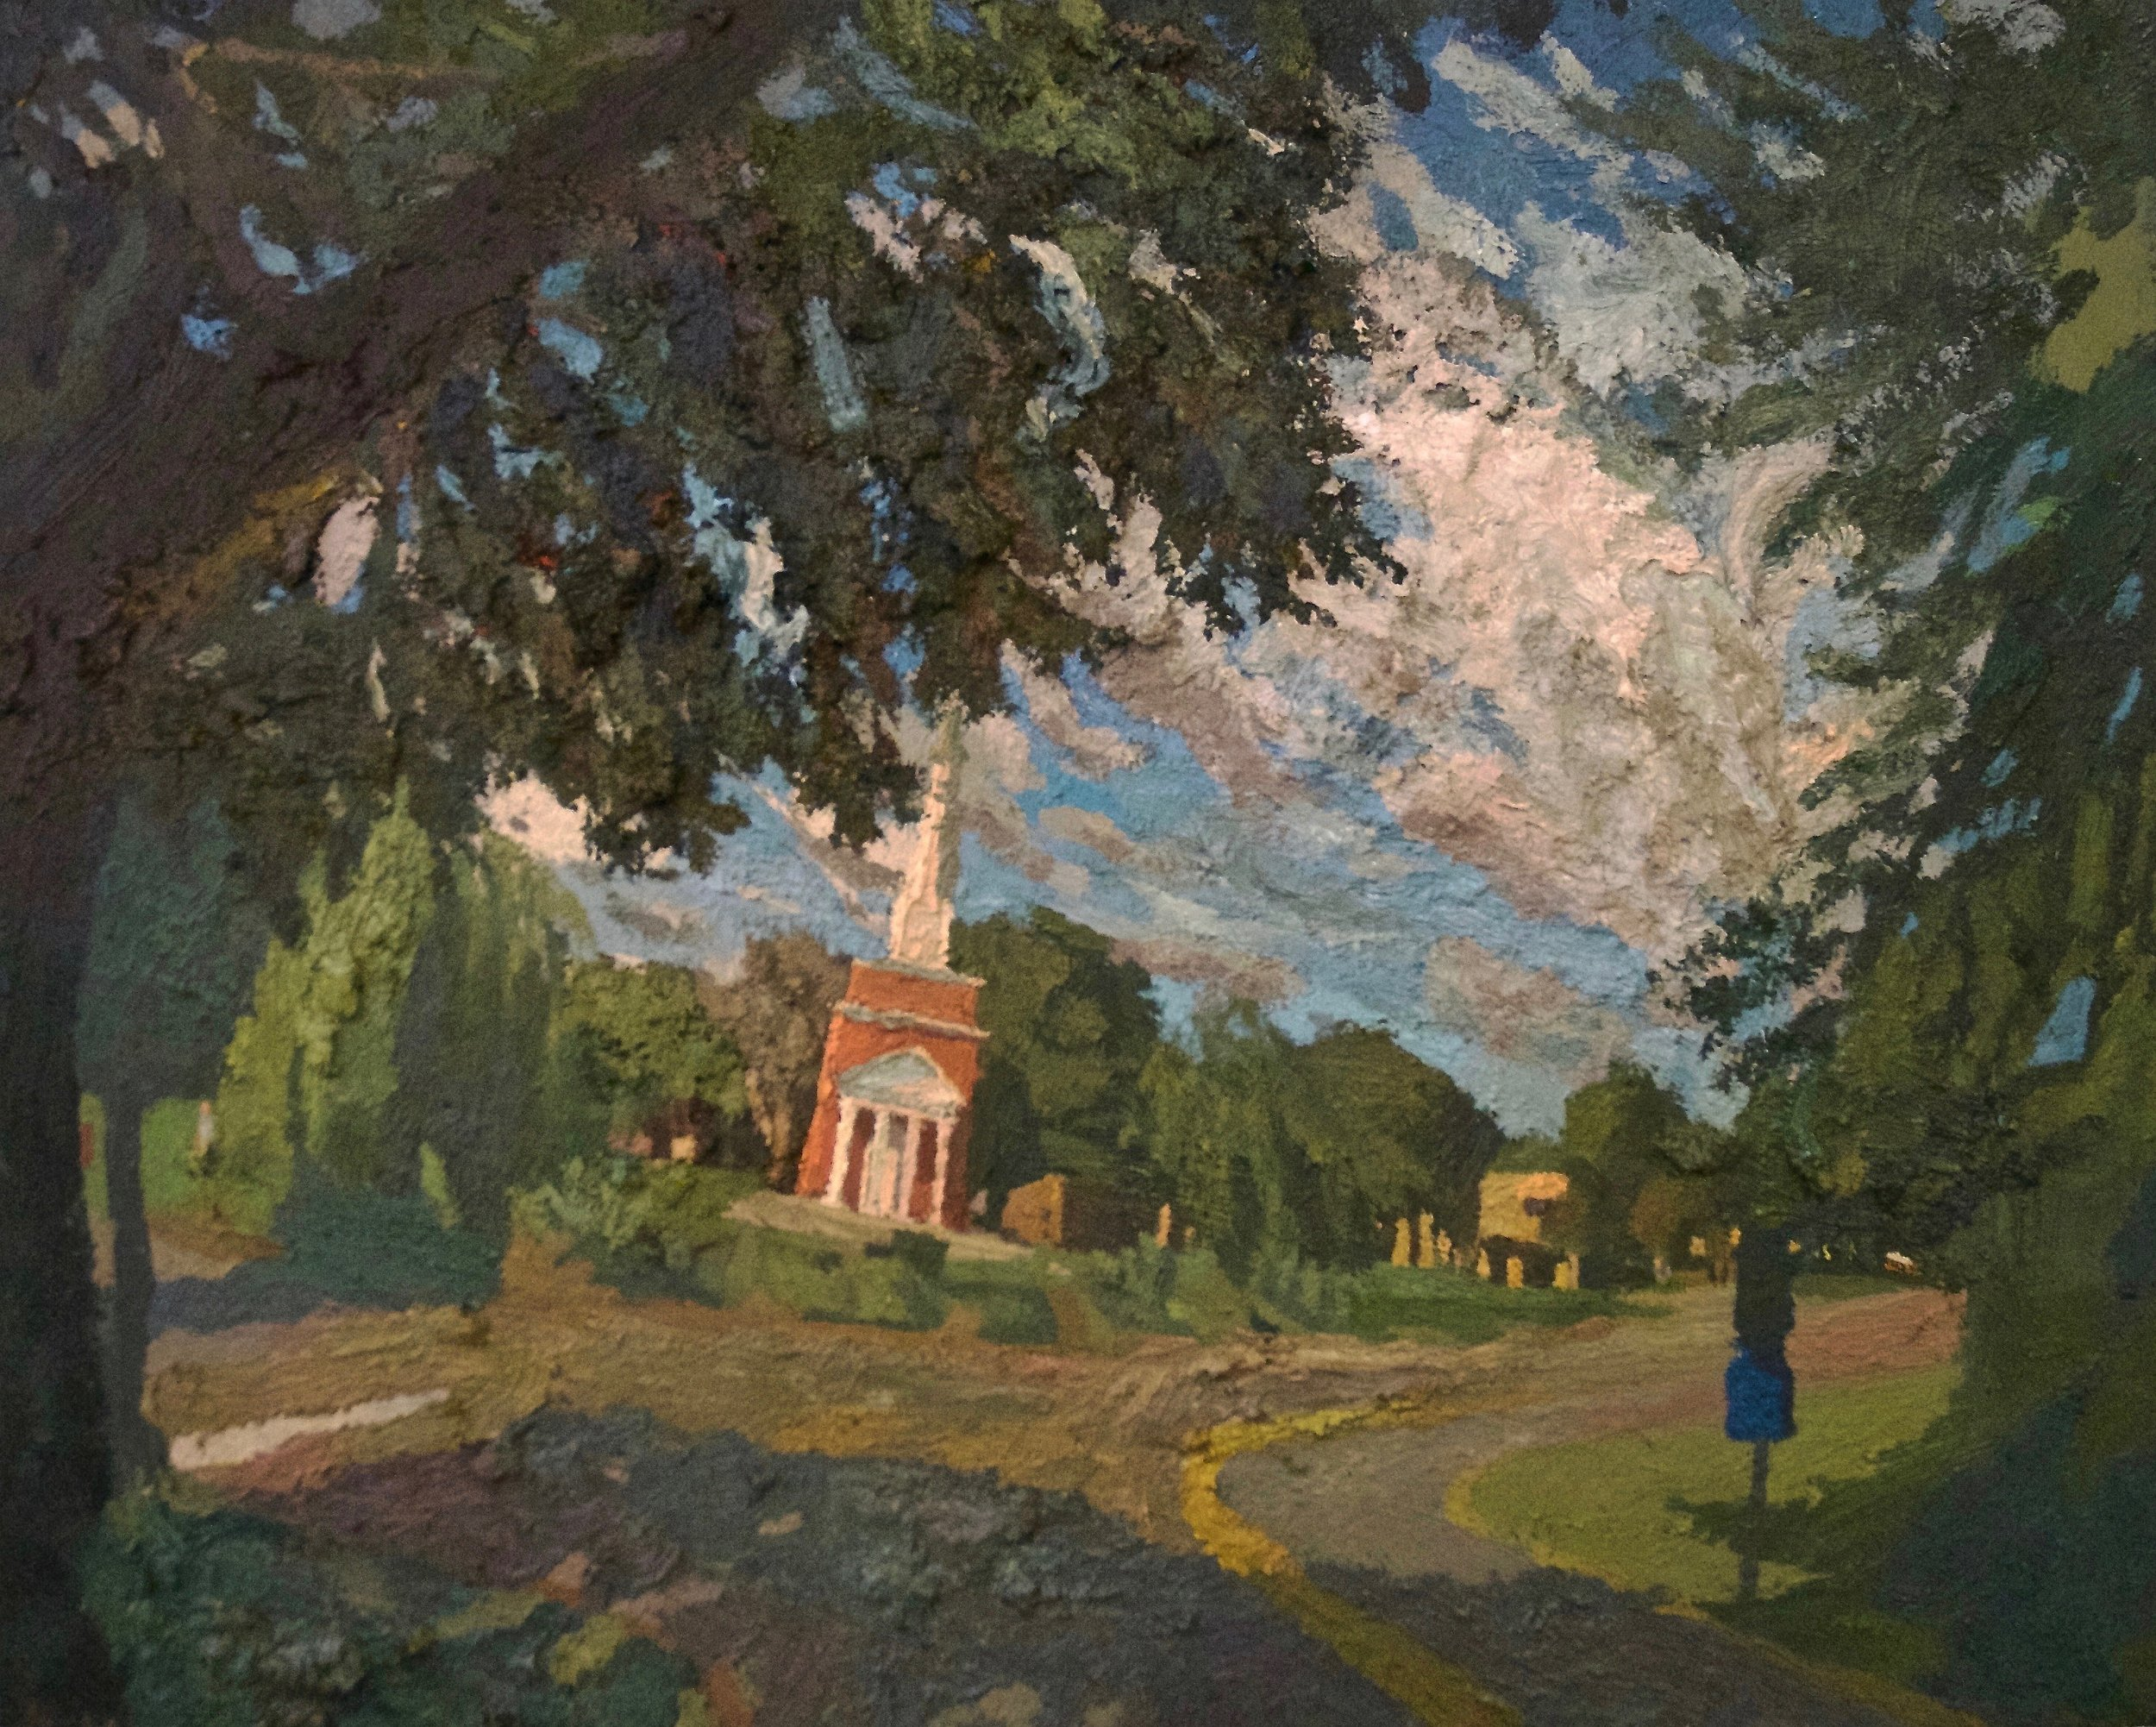 Brian Rego, The Bell Tower, Heathwood Hall, 2016, oil on canvas, 16 x 20 inches (courtesy of the artist)